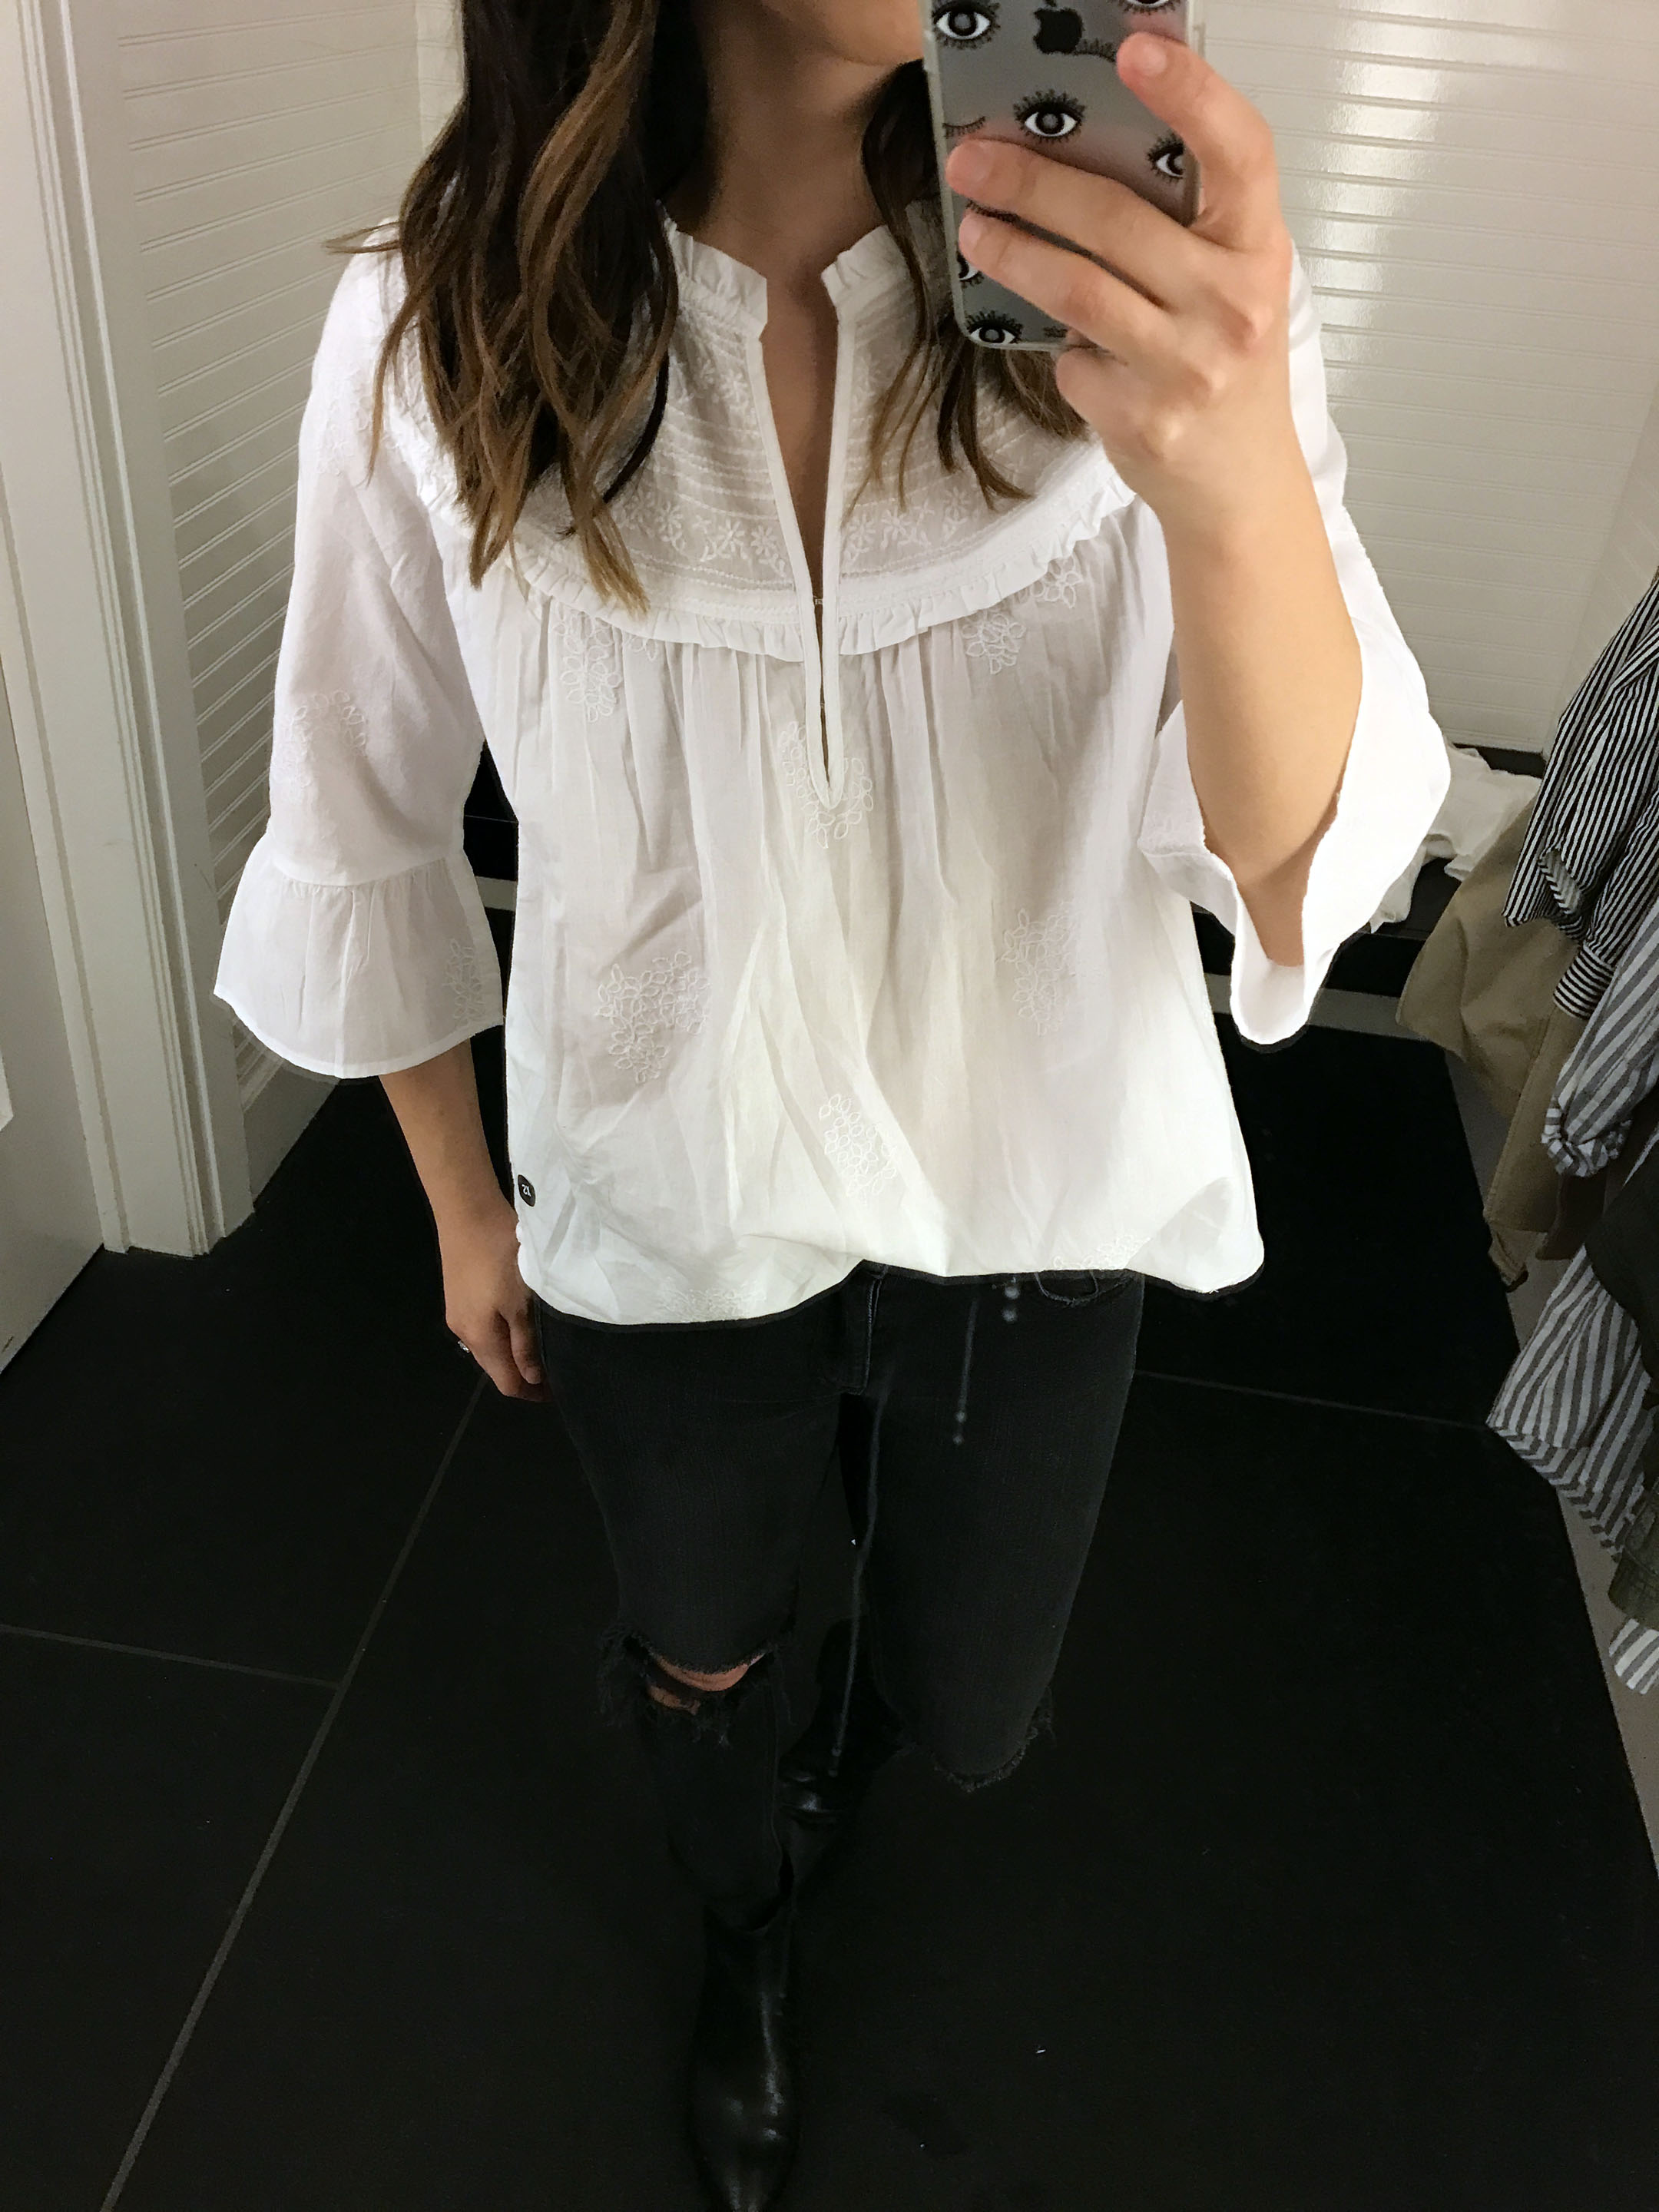 Abercrombie & Fitch embroidered blouse 2